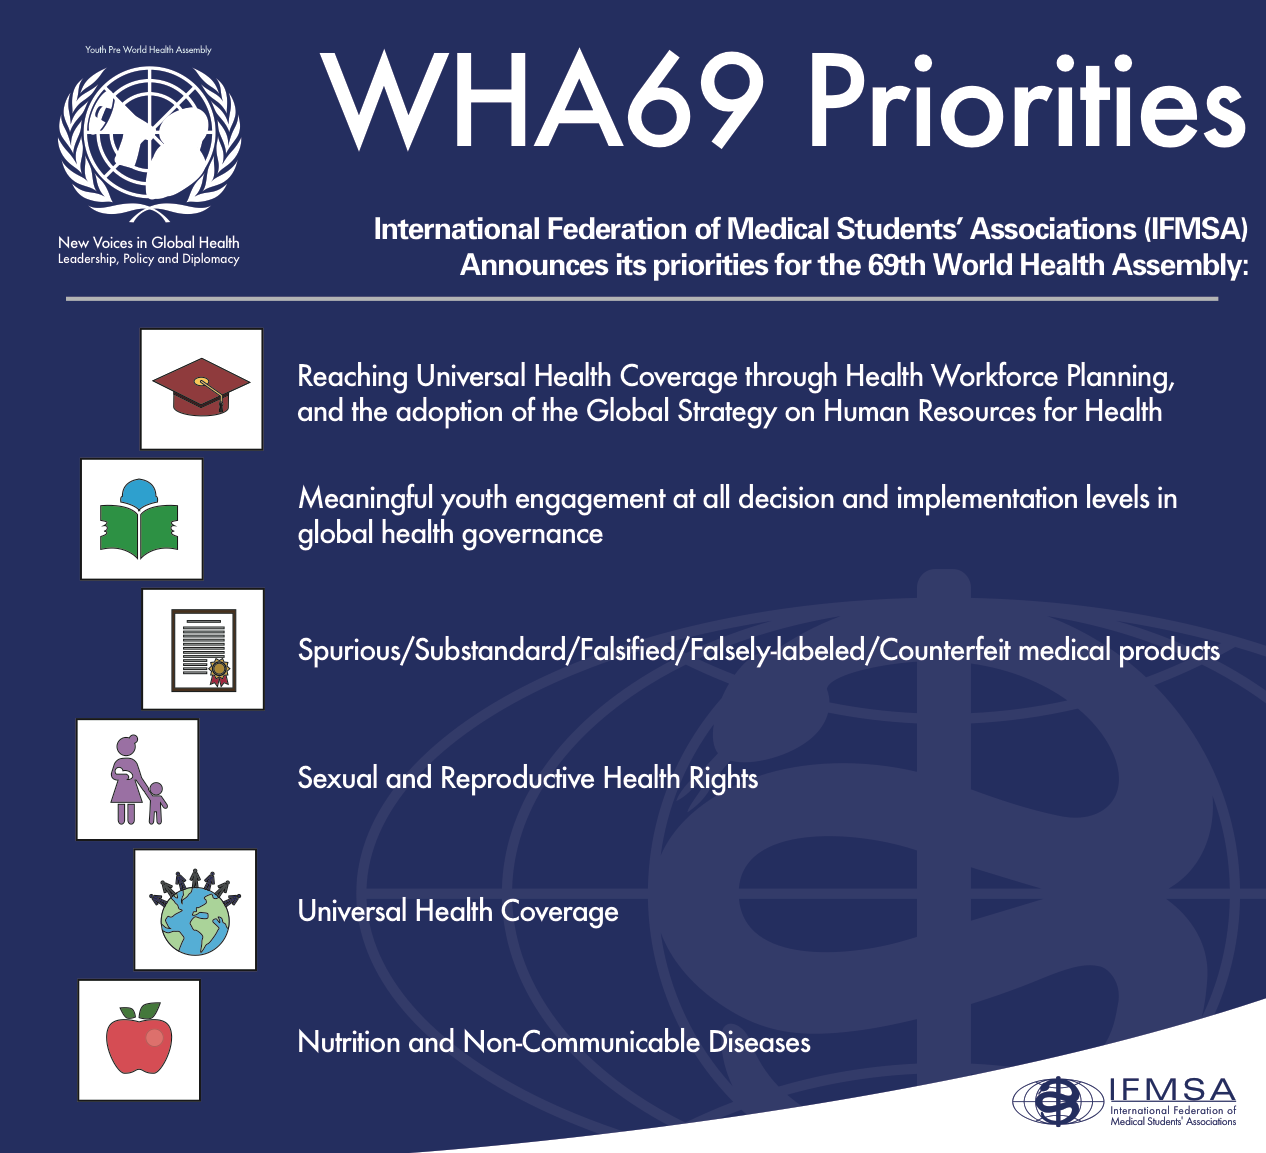 Medical Students Worldwide Announce Priorities for World Health Assembly 69